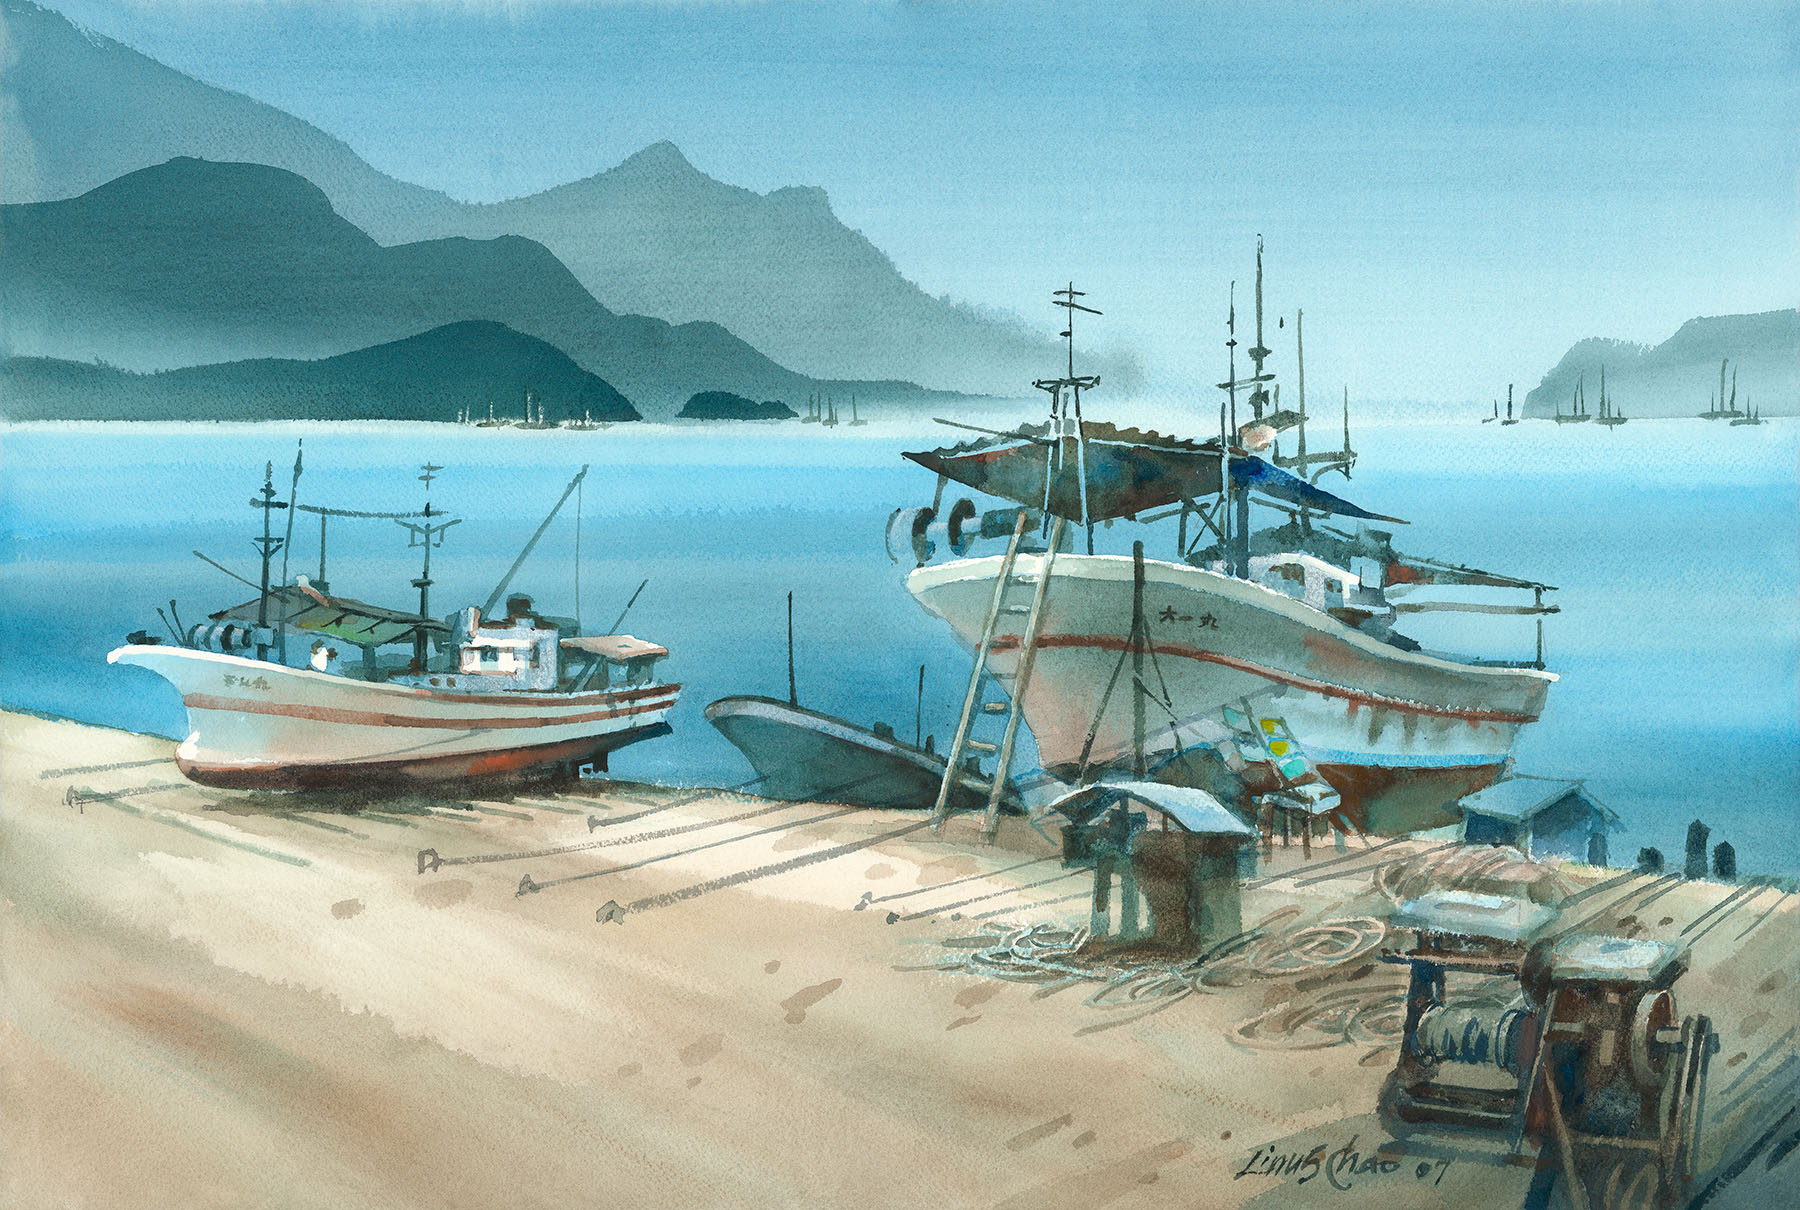 Fishing_Harbor_of_Sado_Island.jpg